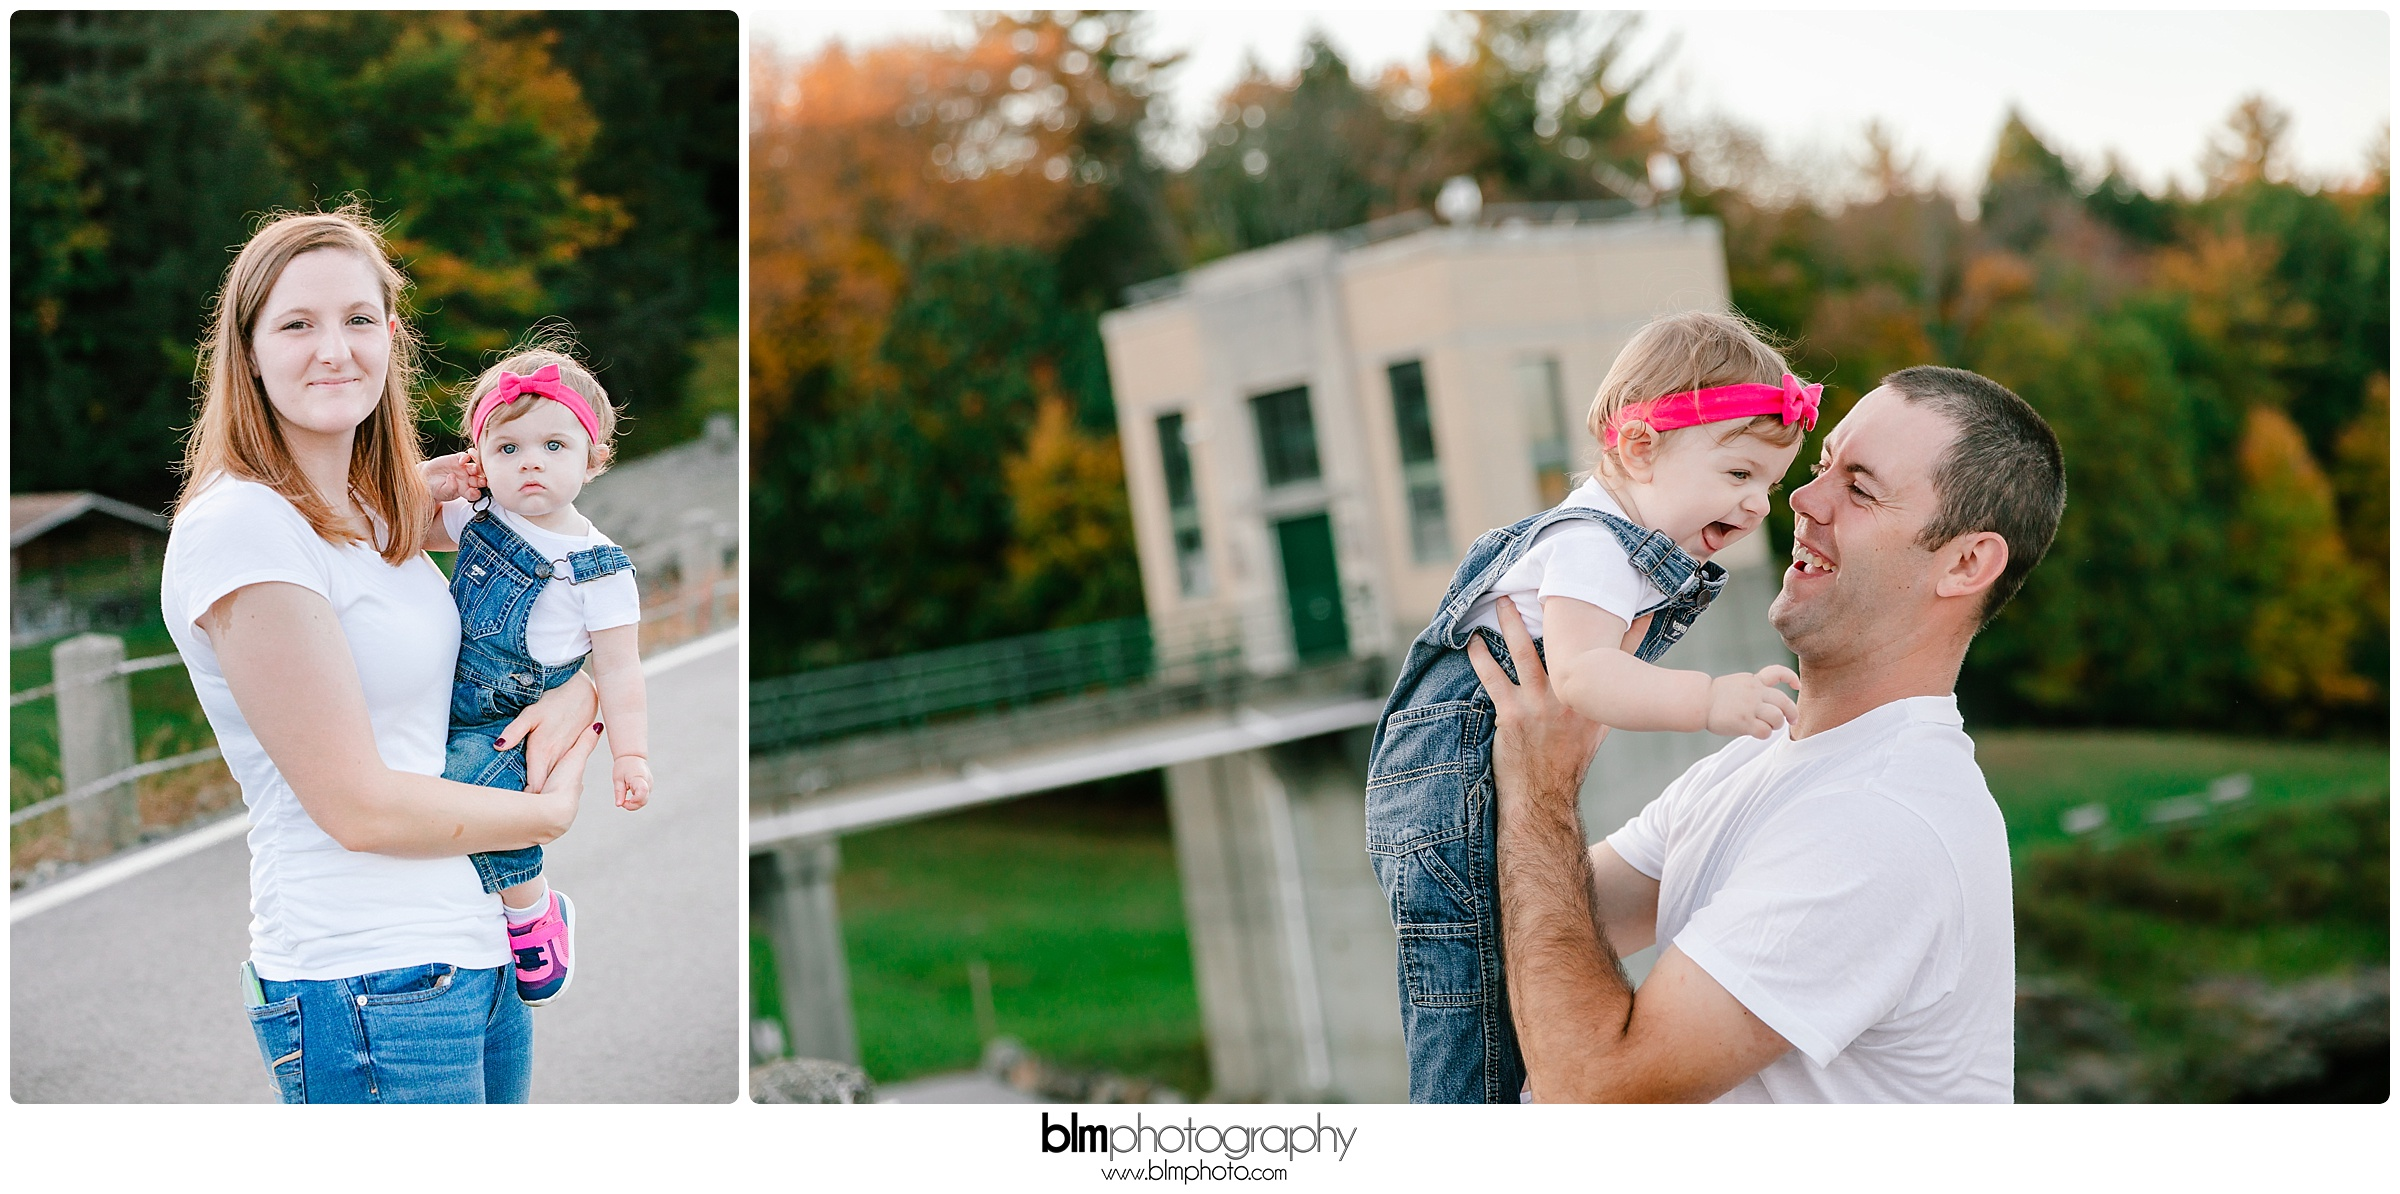 BLM,Brianna Morrissey,Brie Morrissey,Derrik Hanson,Family Photography,Family Session,Gracie Hanson,Justine Jarest,Justine-Derrik_Family,MacDowell Dam,Oct,October,Photo,Photographer,Photography,www.blmphoto.com/contact,©BLM Photography 2018,